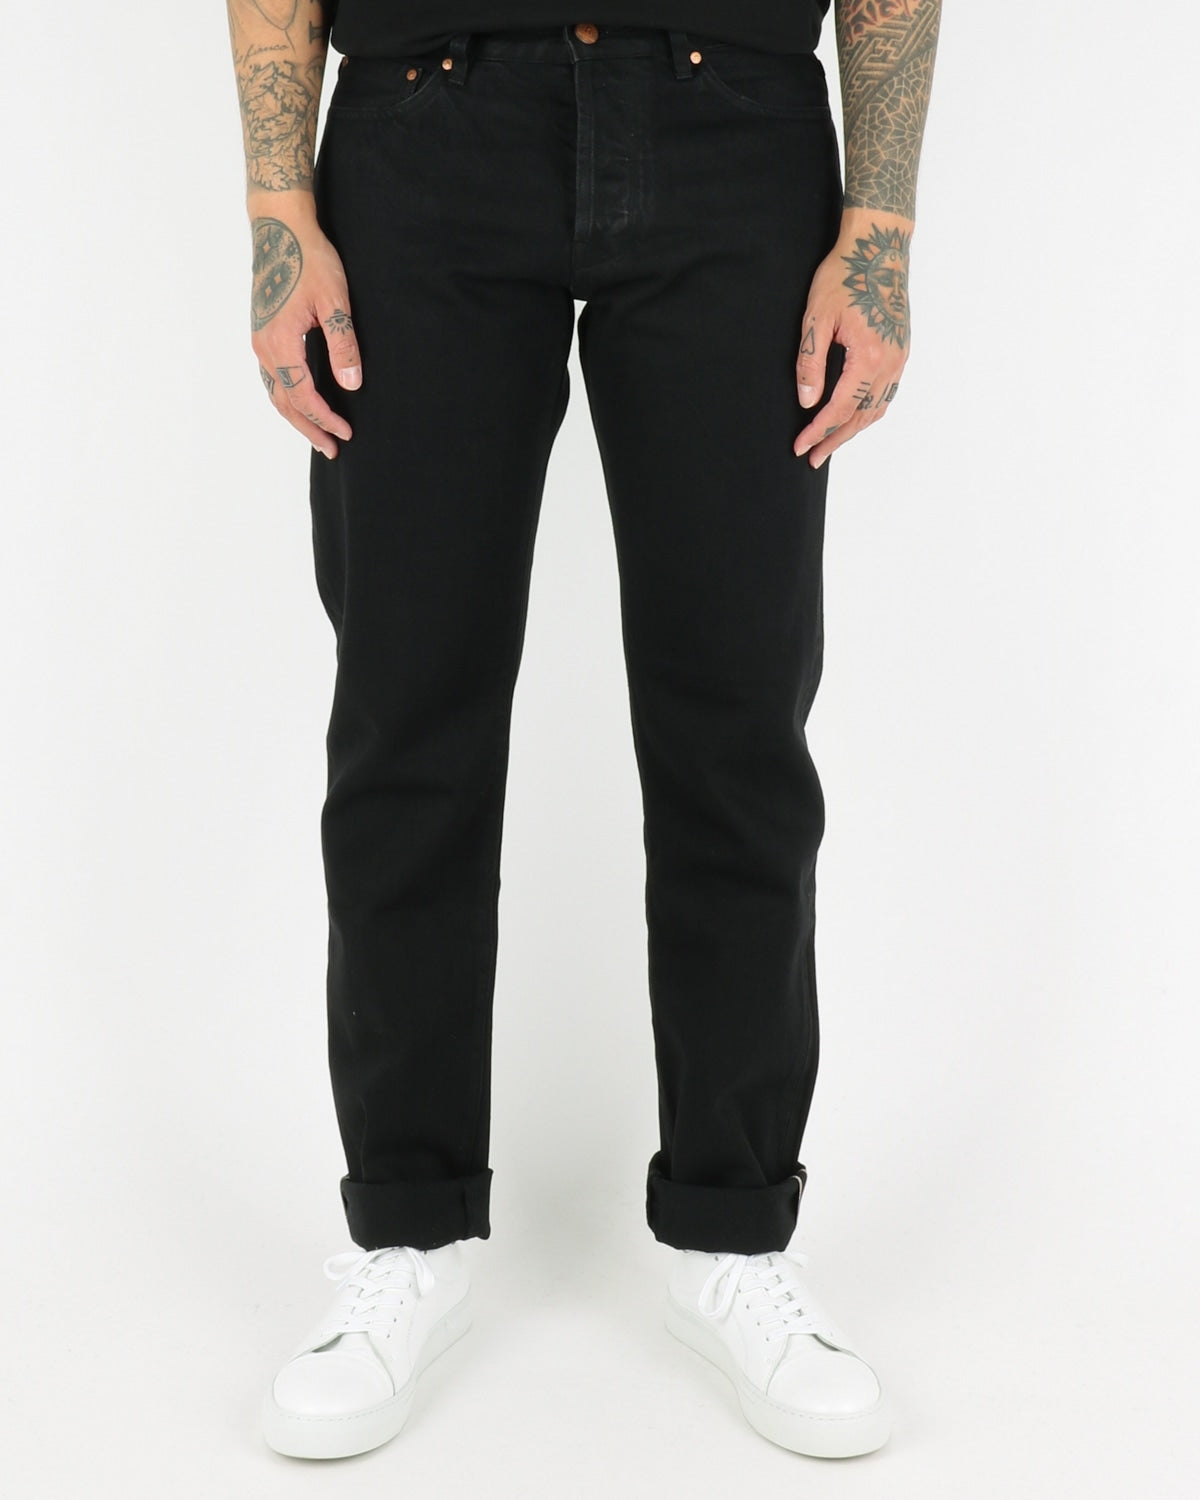 han kjobenhavn_tapered jeans_black denim_view_1_4